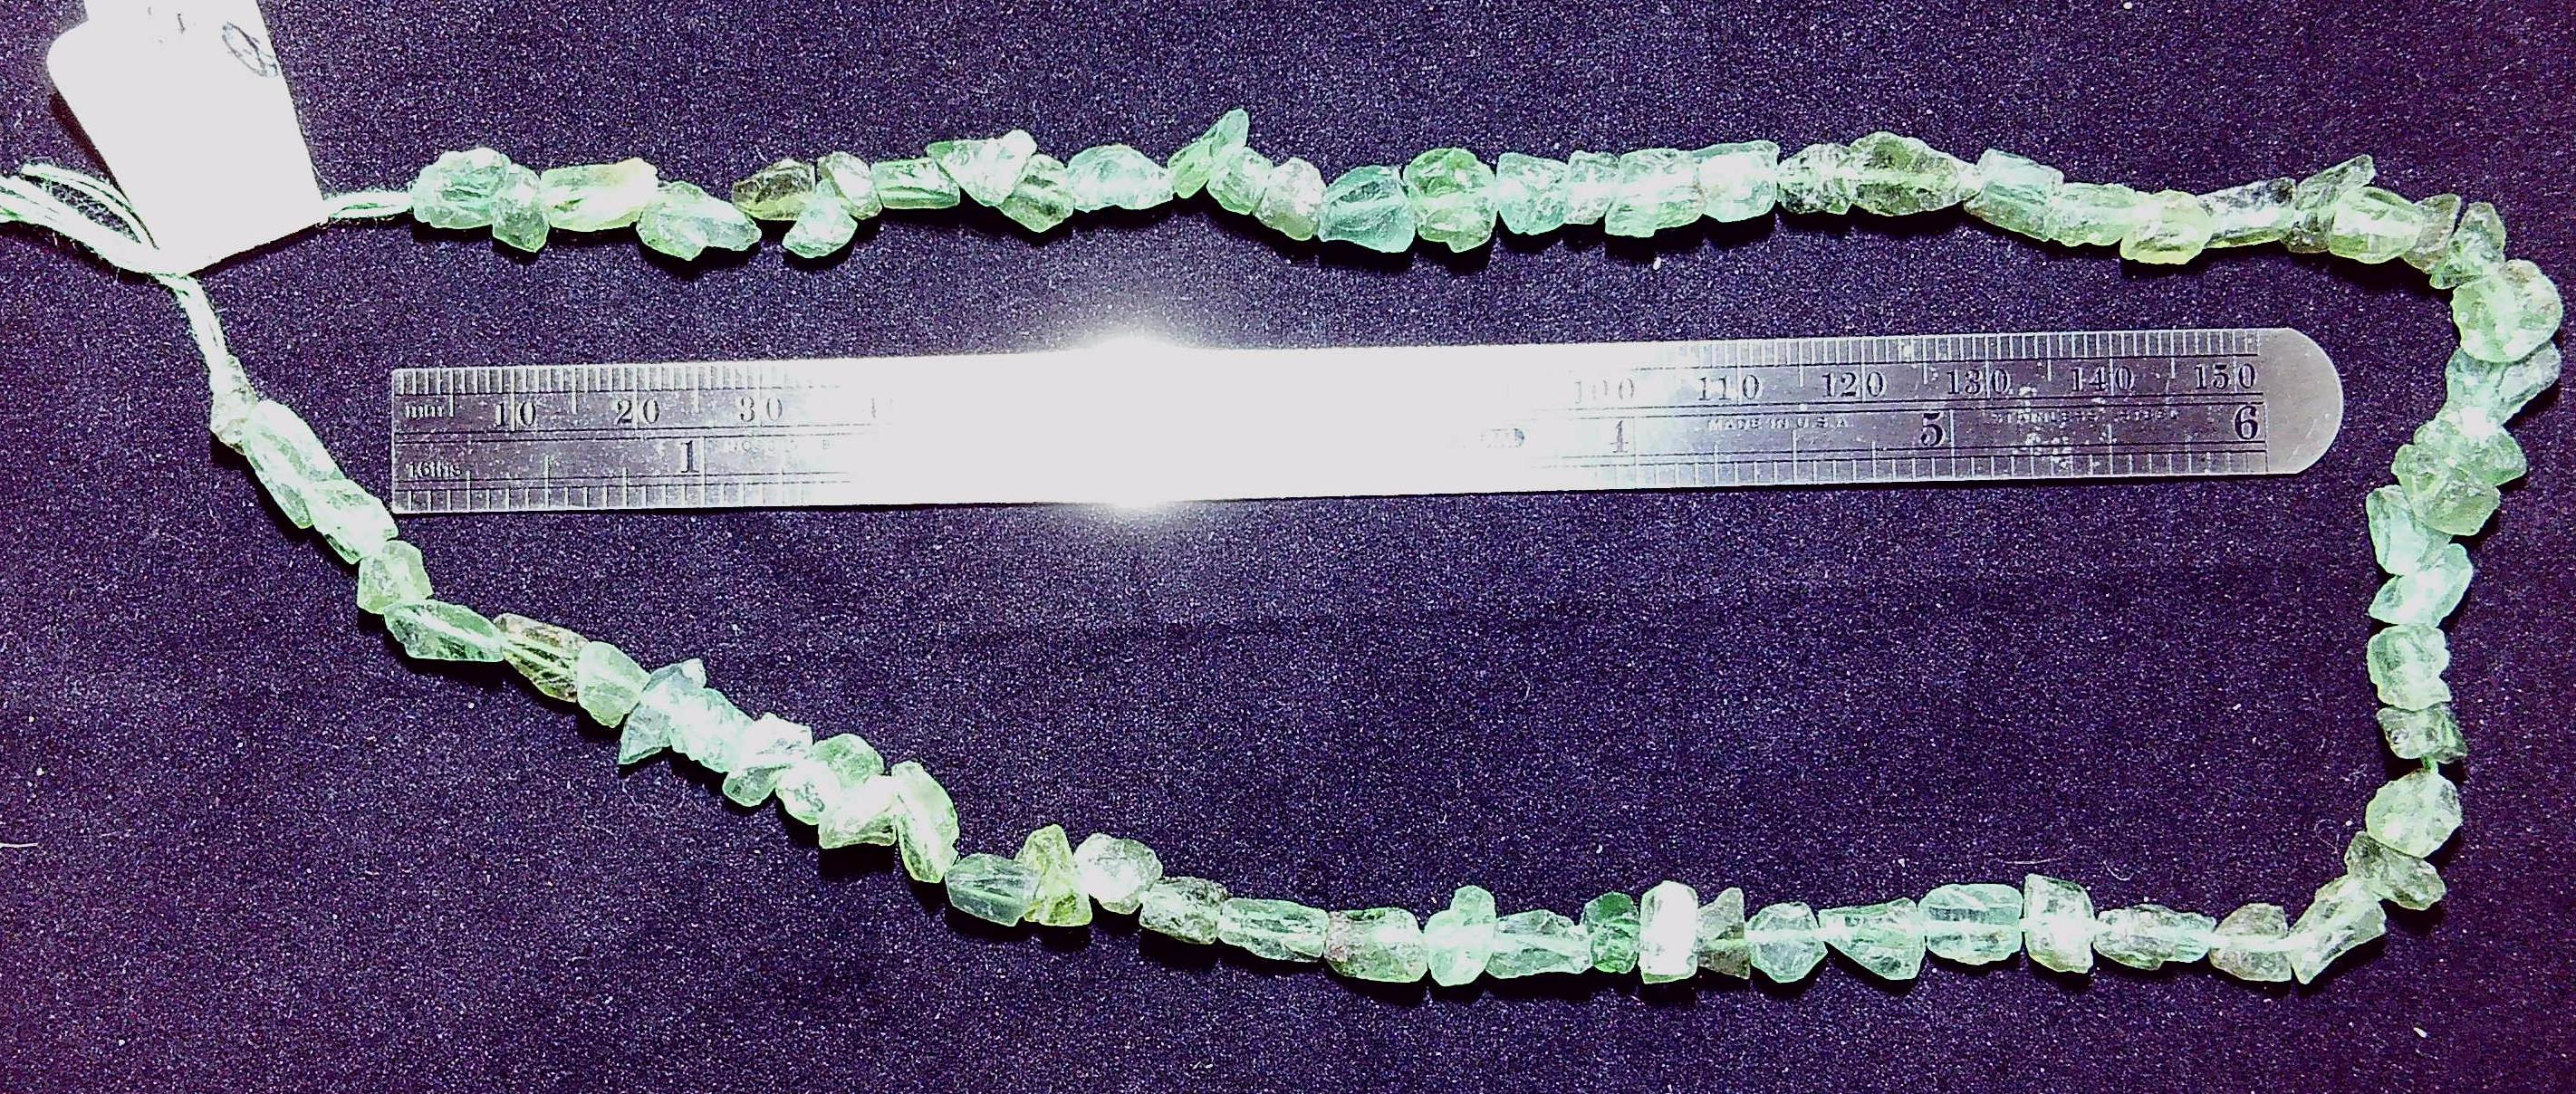 Blue/green Natural Rare Apatite rough chip beads 16 inch strand